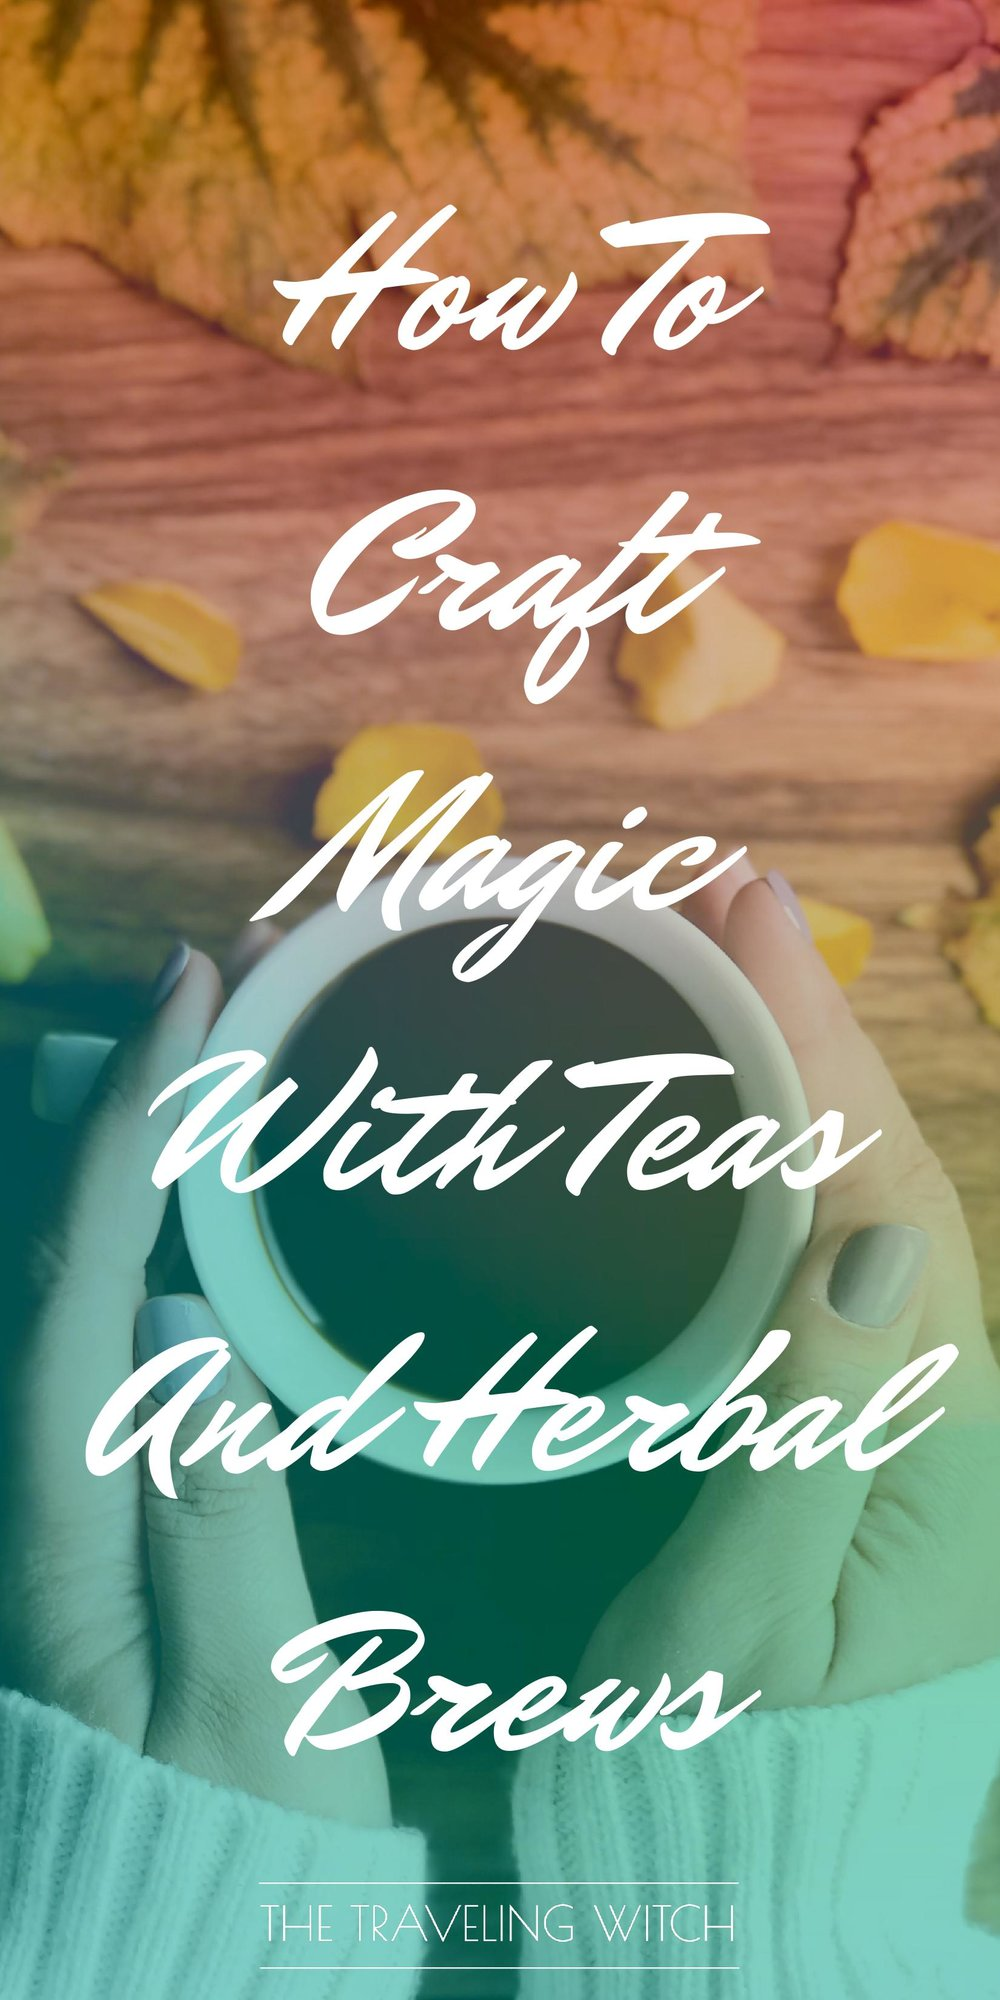 How To Craft Magic With Teas And Herbal Brews // Witchcraft // The Traveling Witch